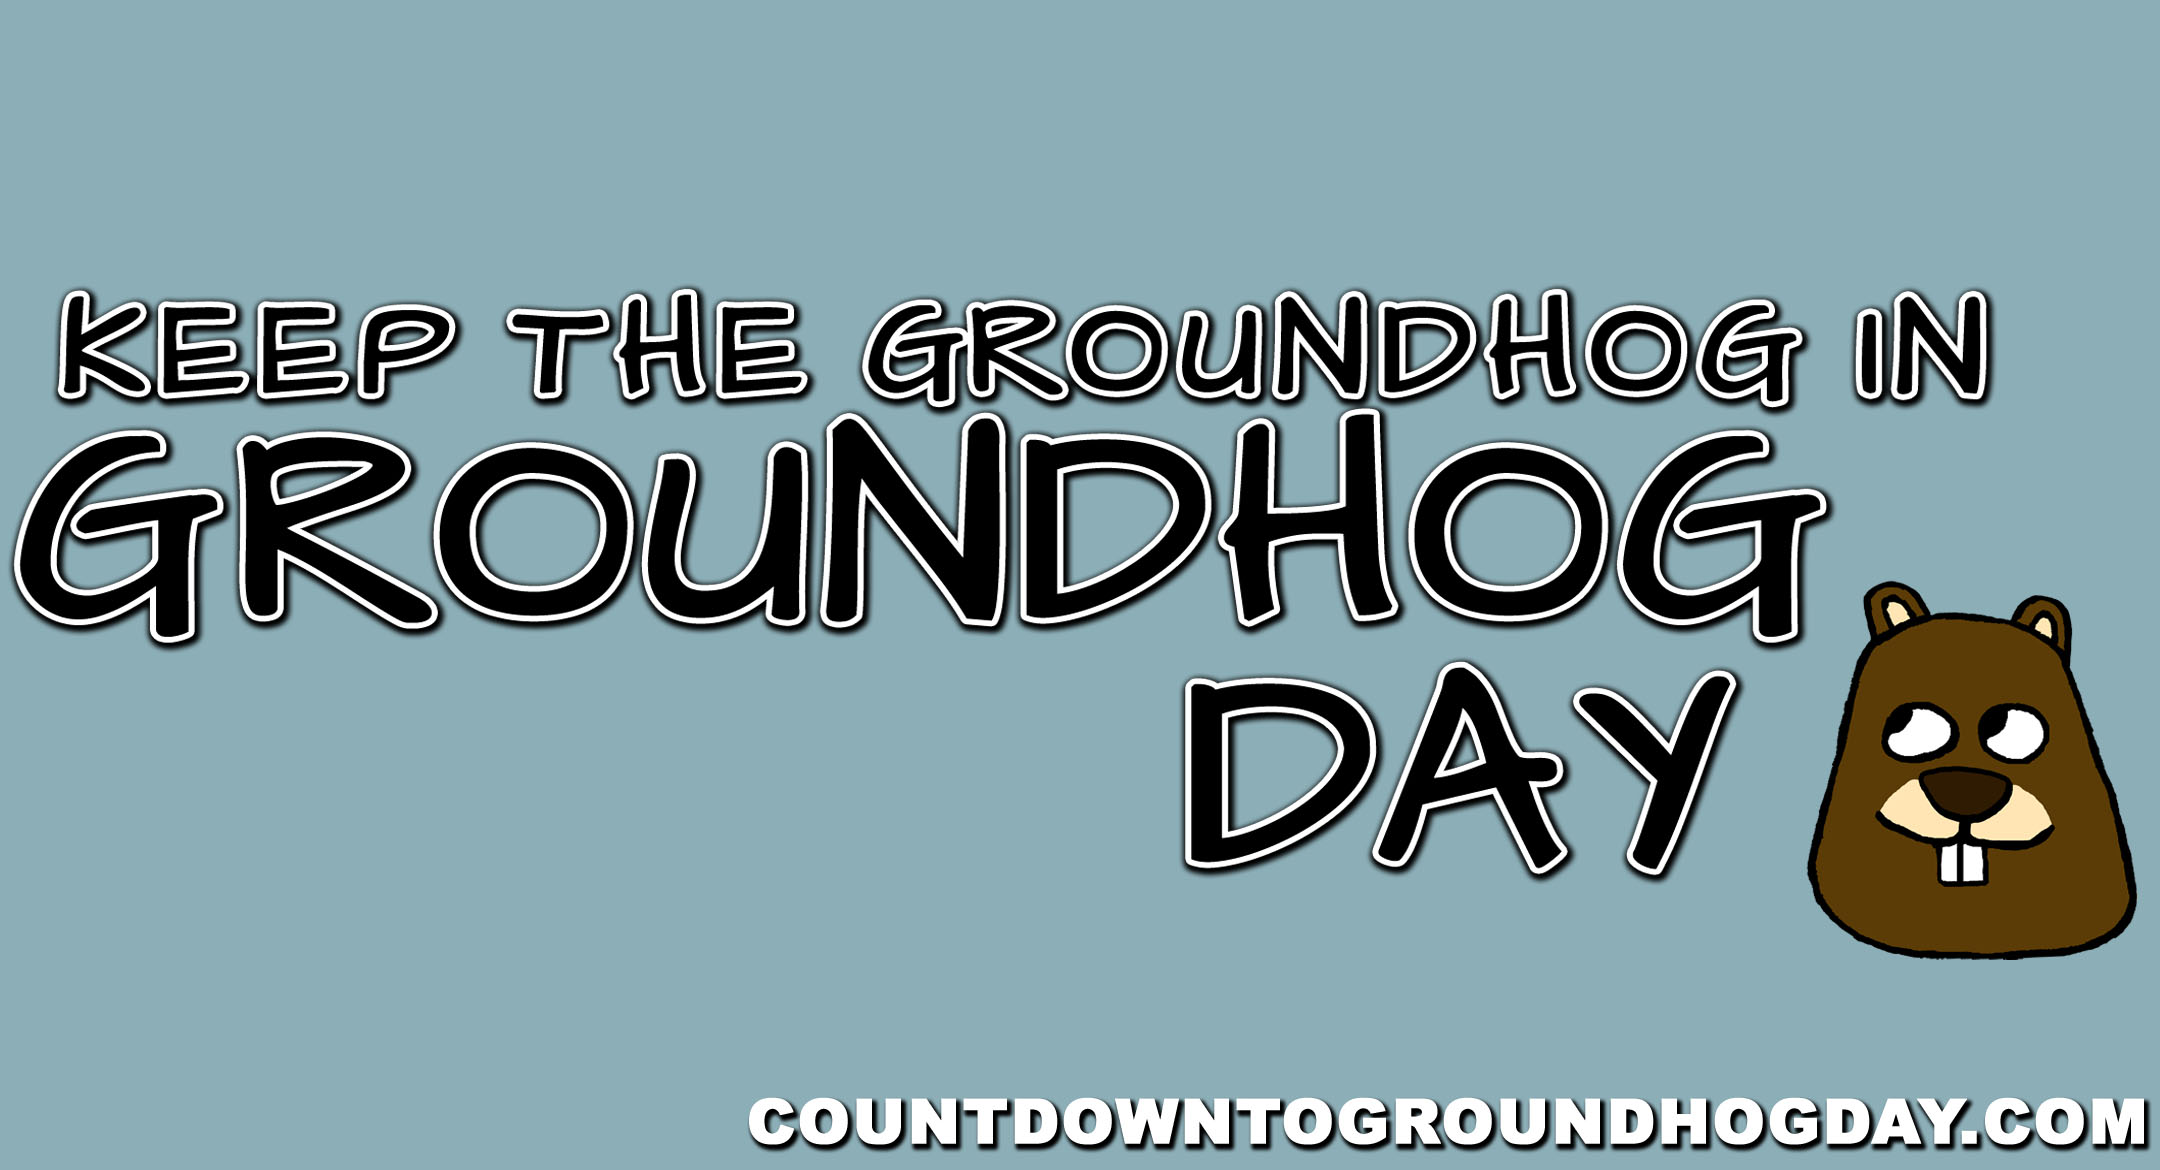 Keep the groundhog in Groundhog Day